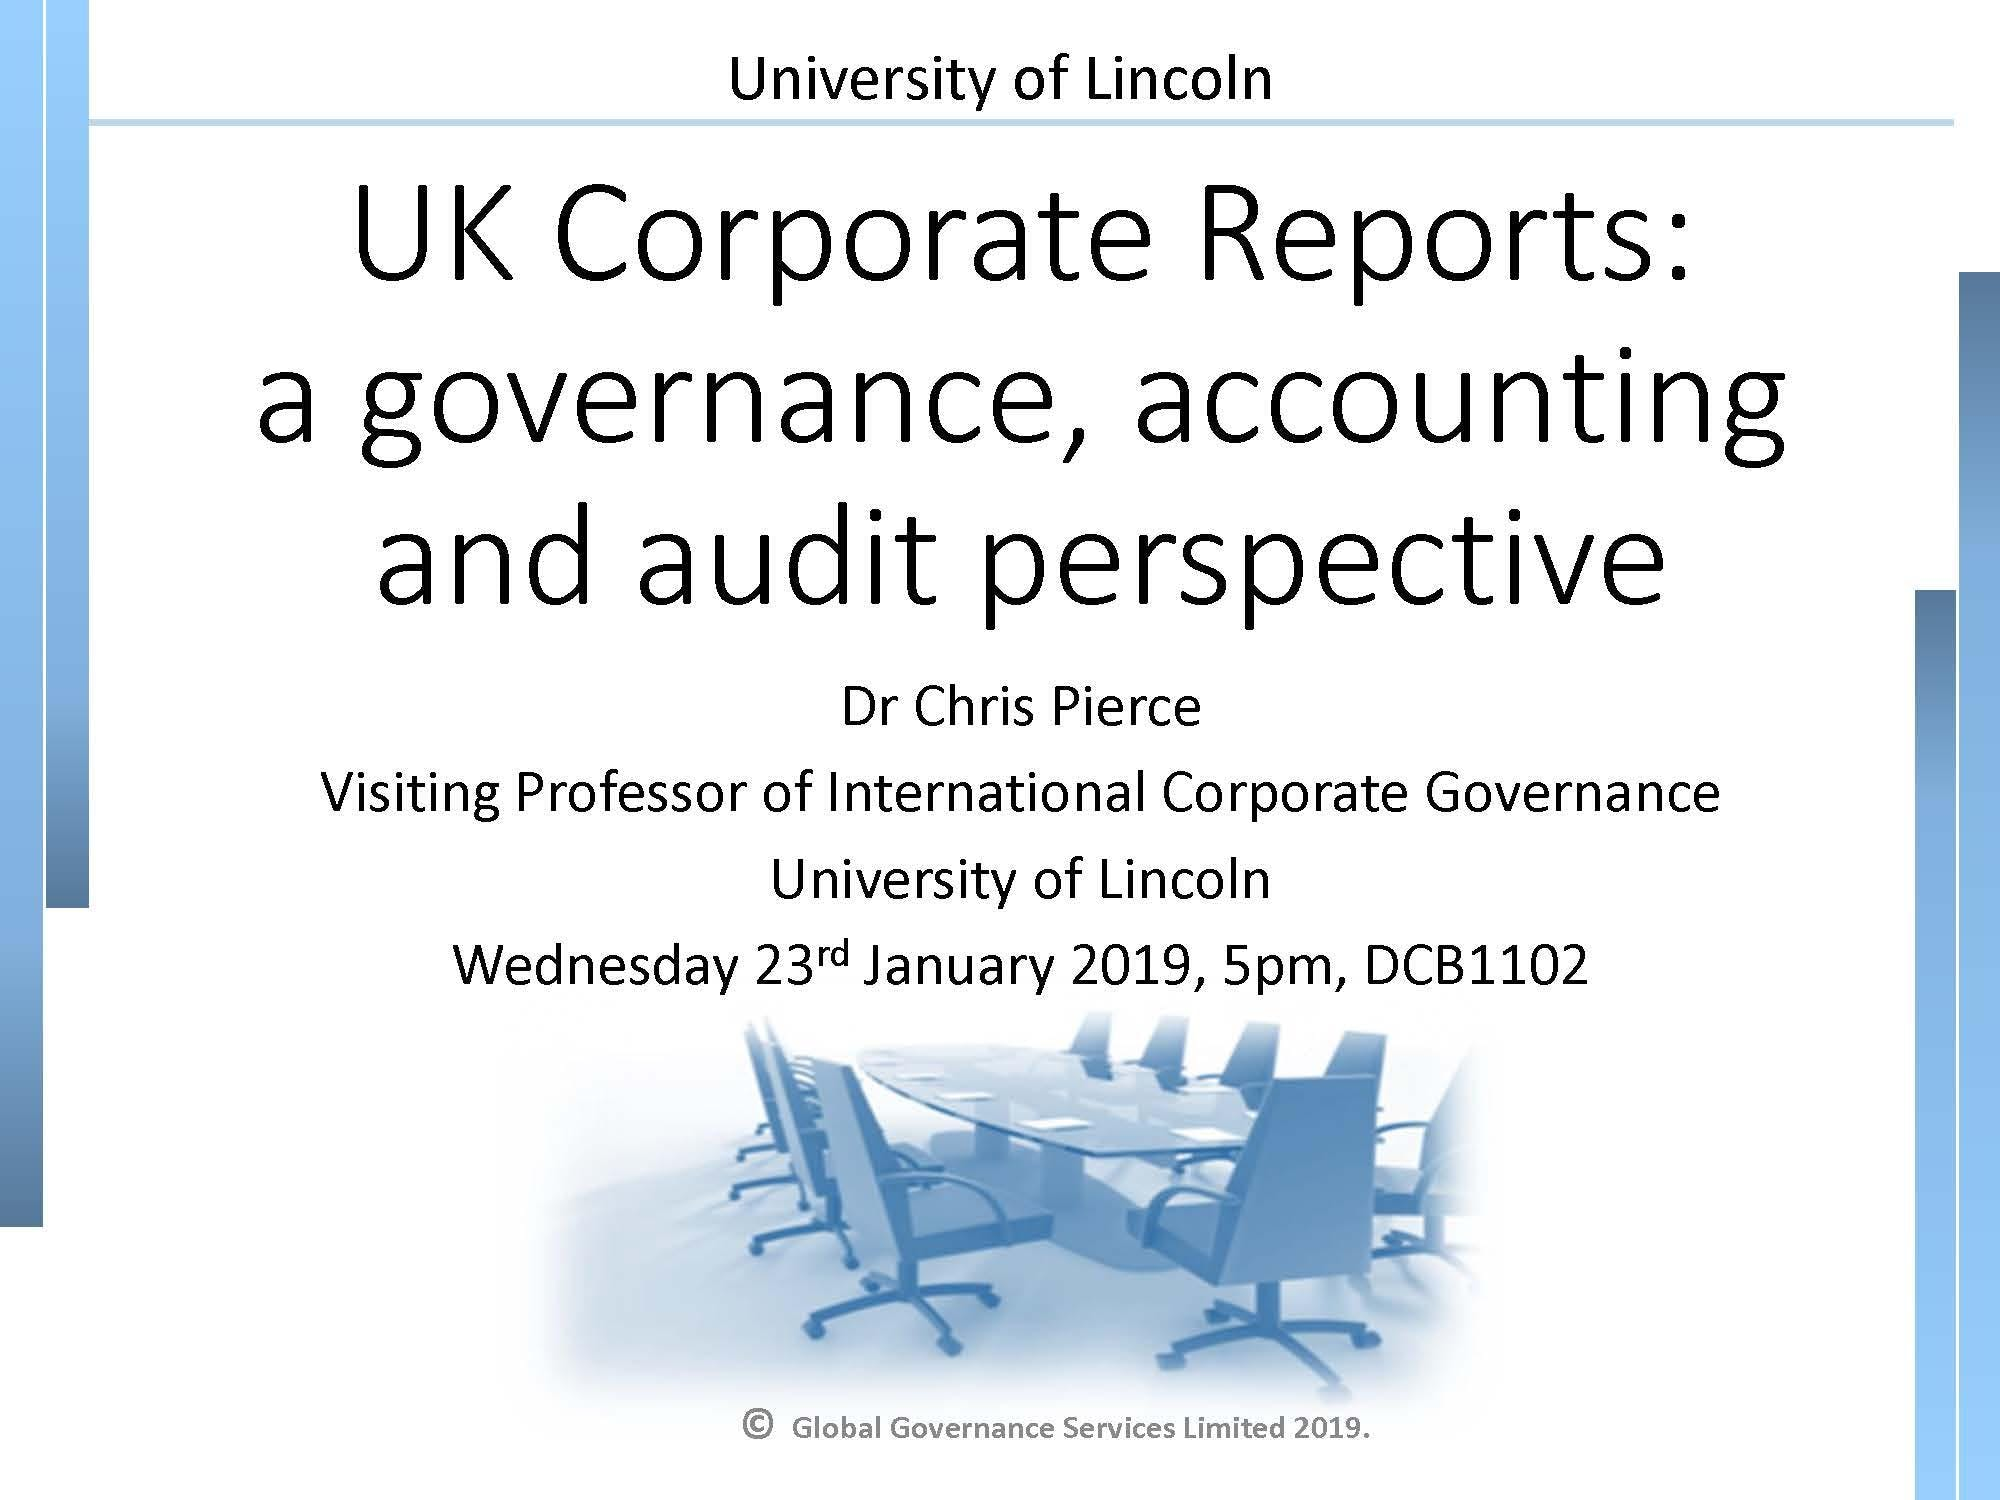 UK Corporate Reports: a governance, accountin